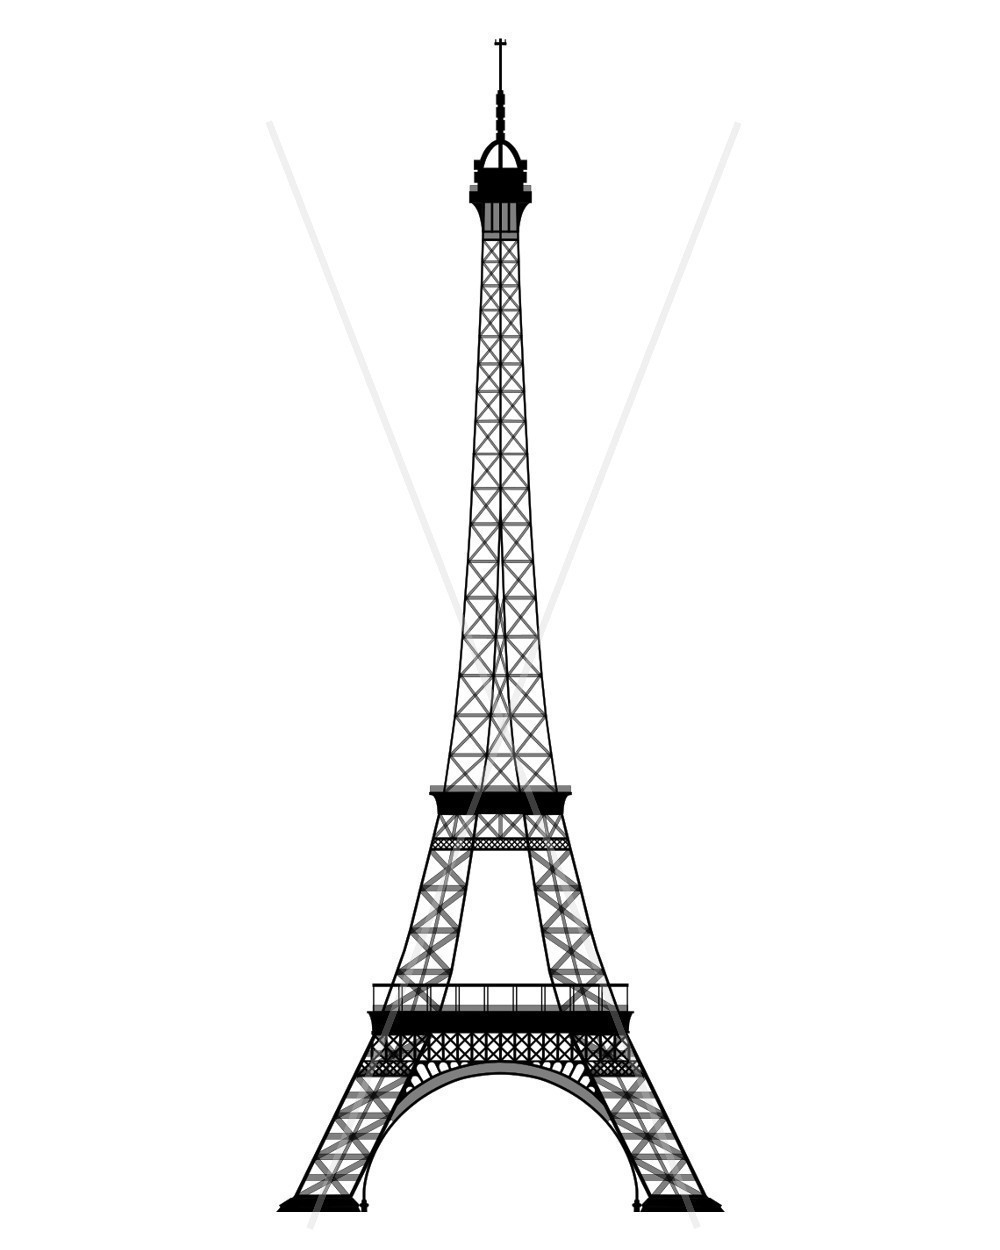 Dessins Et Coloriages: Page De Coloriage Grand Format À à Tour Eiffel À Imprimer